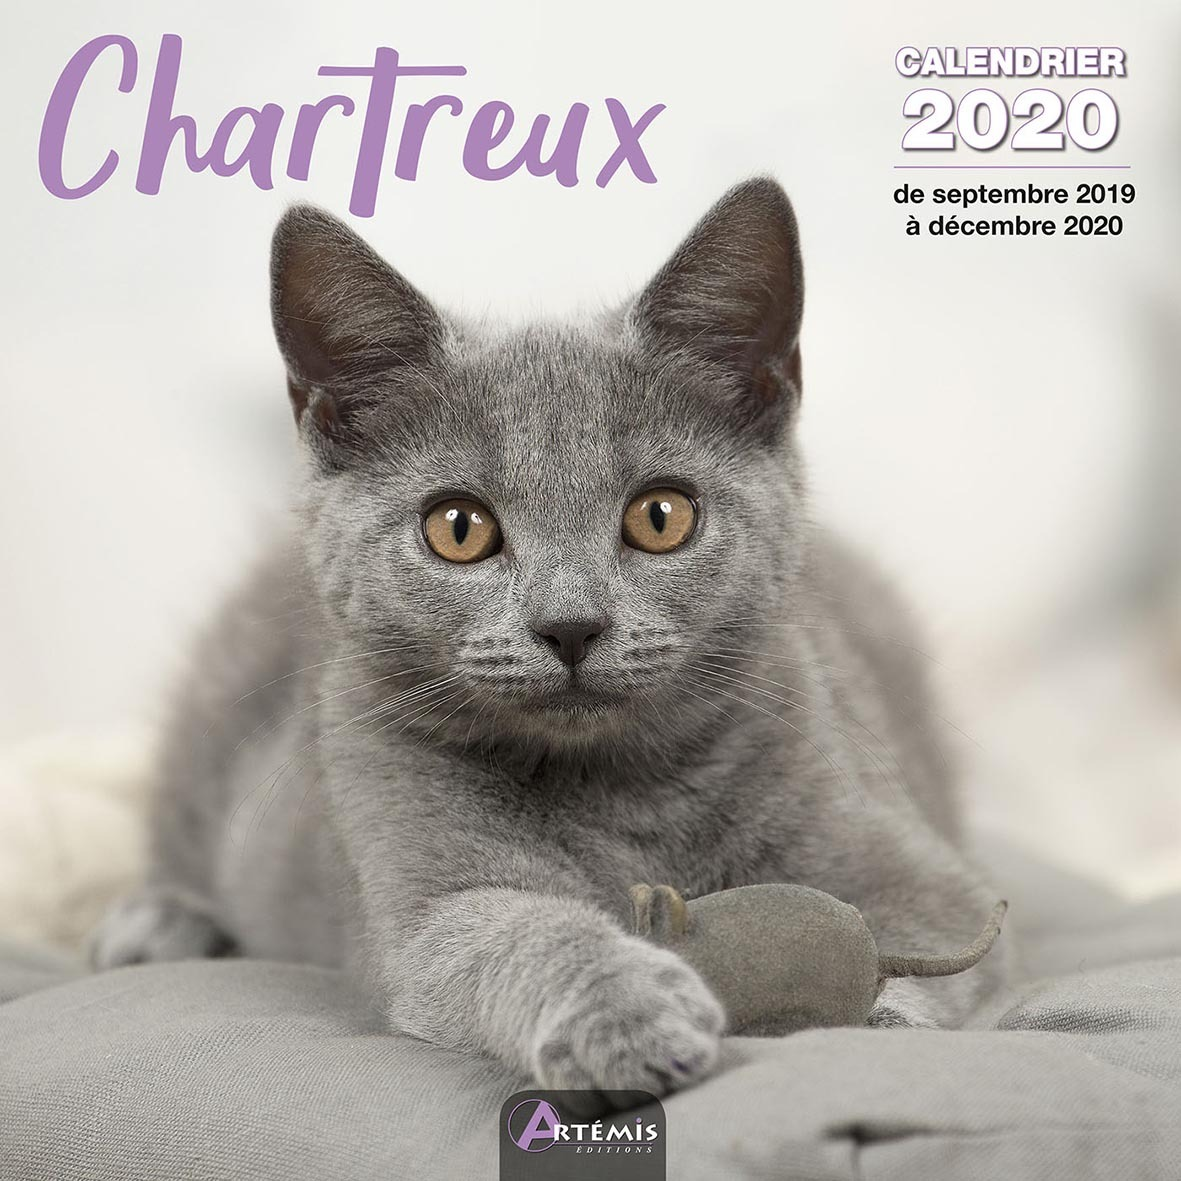 CALENDRIER CHARTREUX (2020)